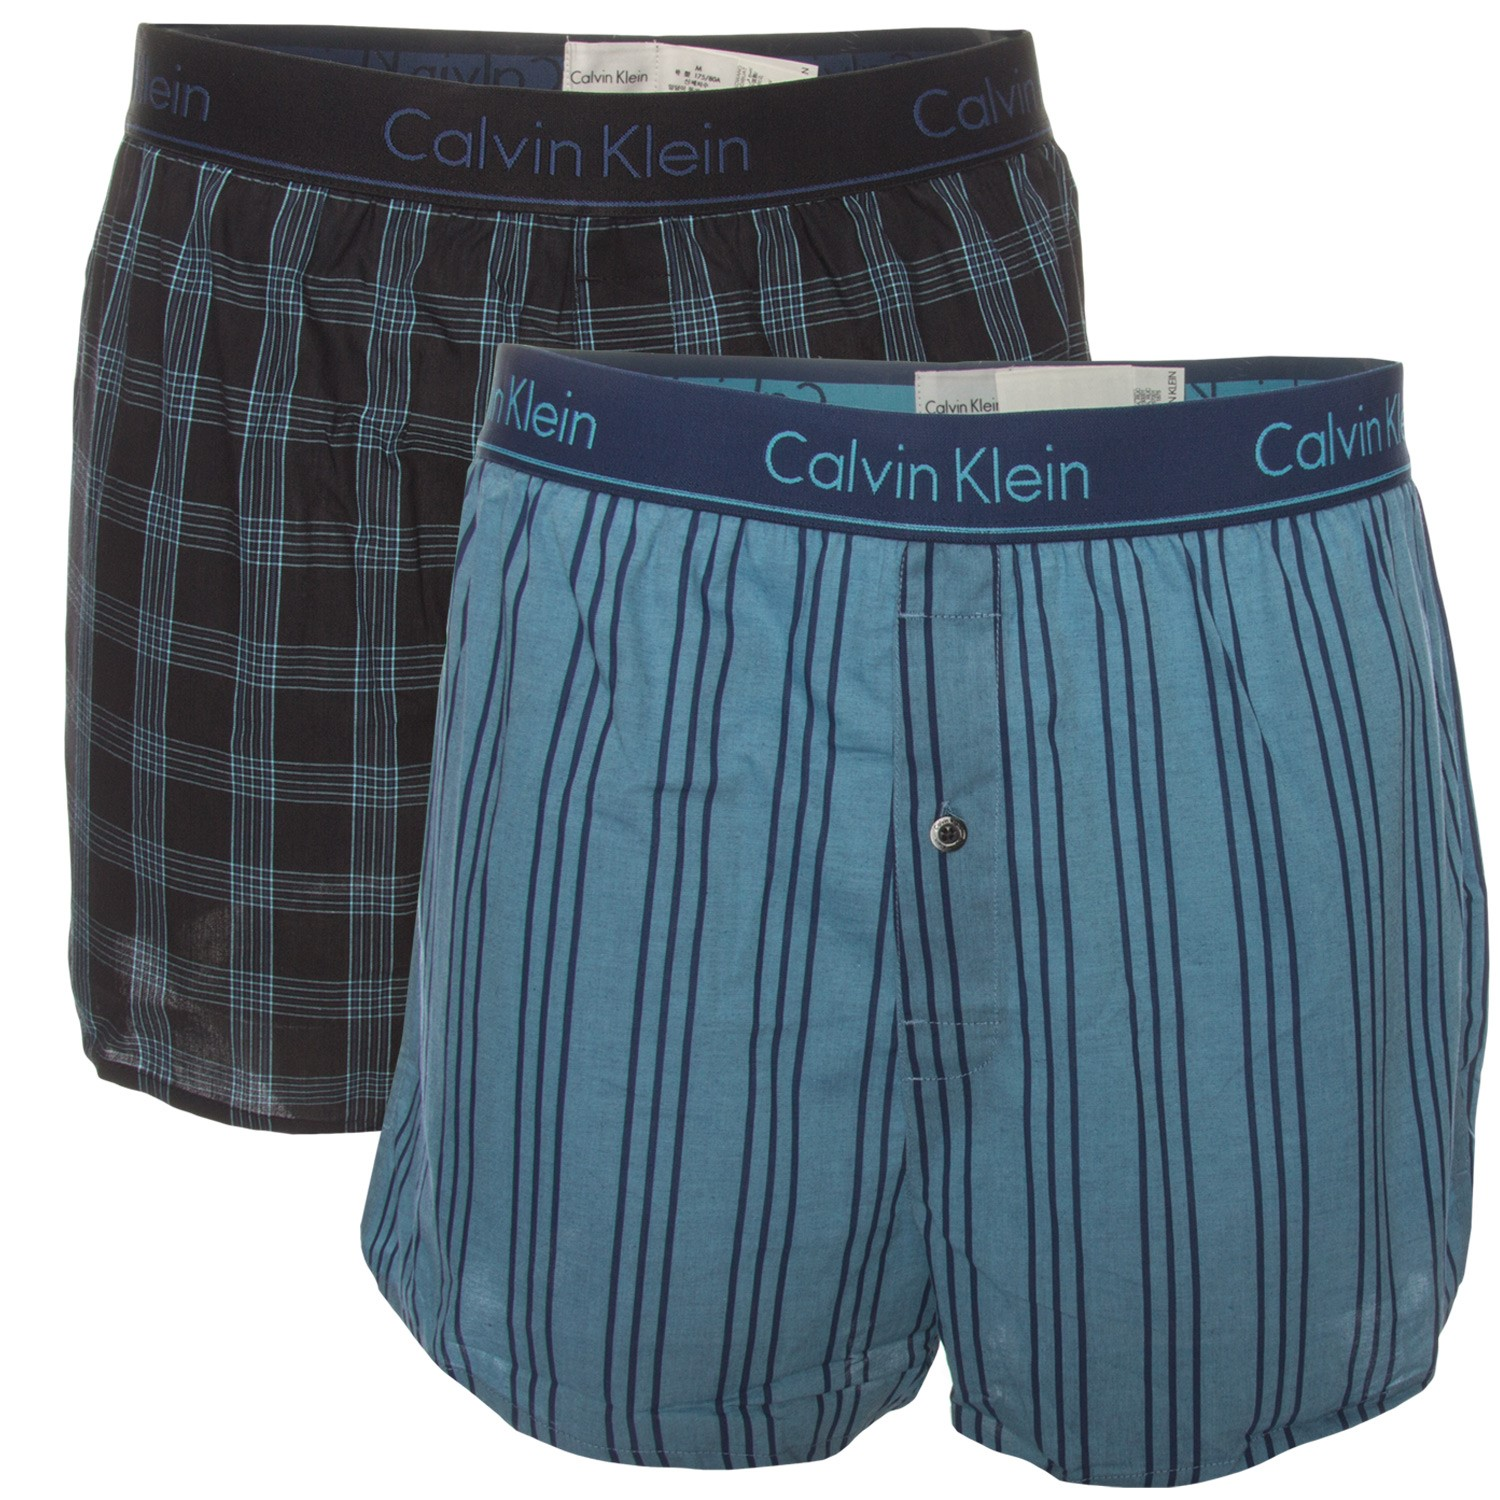 cd8f8a40e217 2-Pack Calvin Klein Slim Fit Woven Boxer - Boxer shorts - Trunks ...